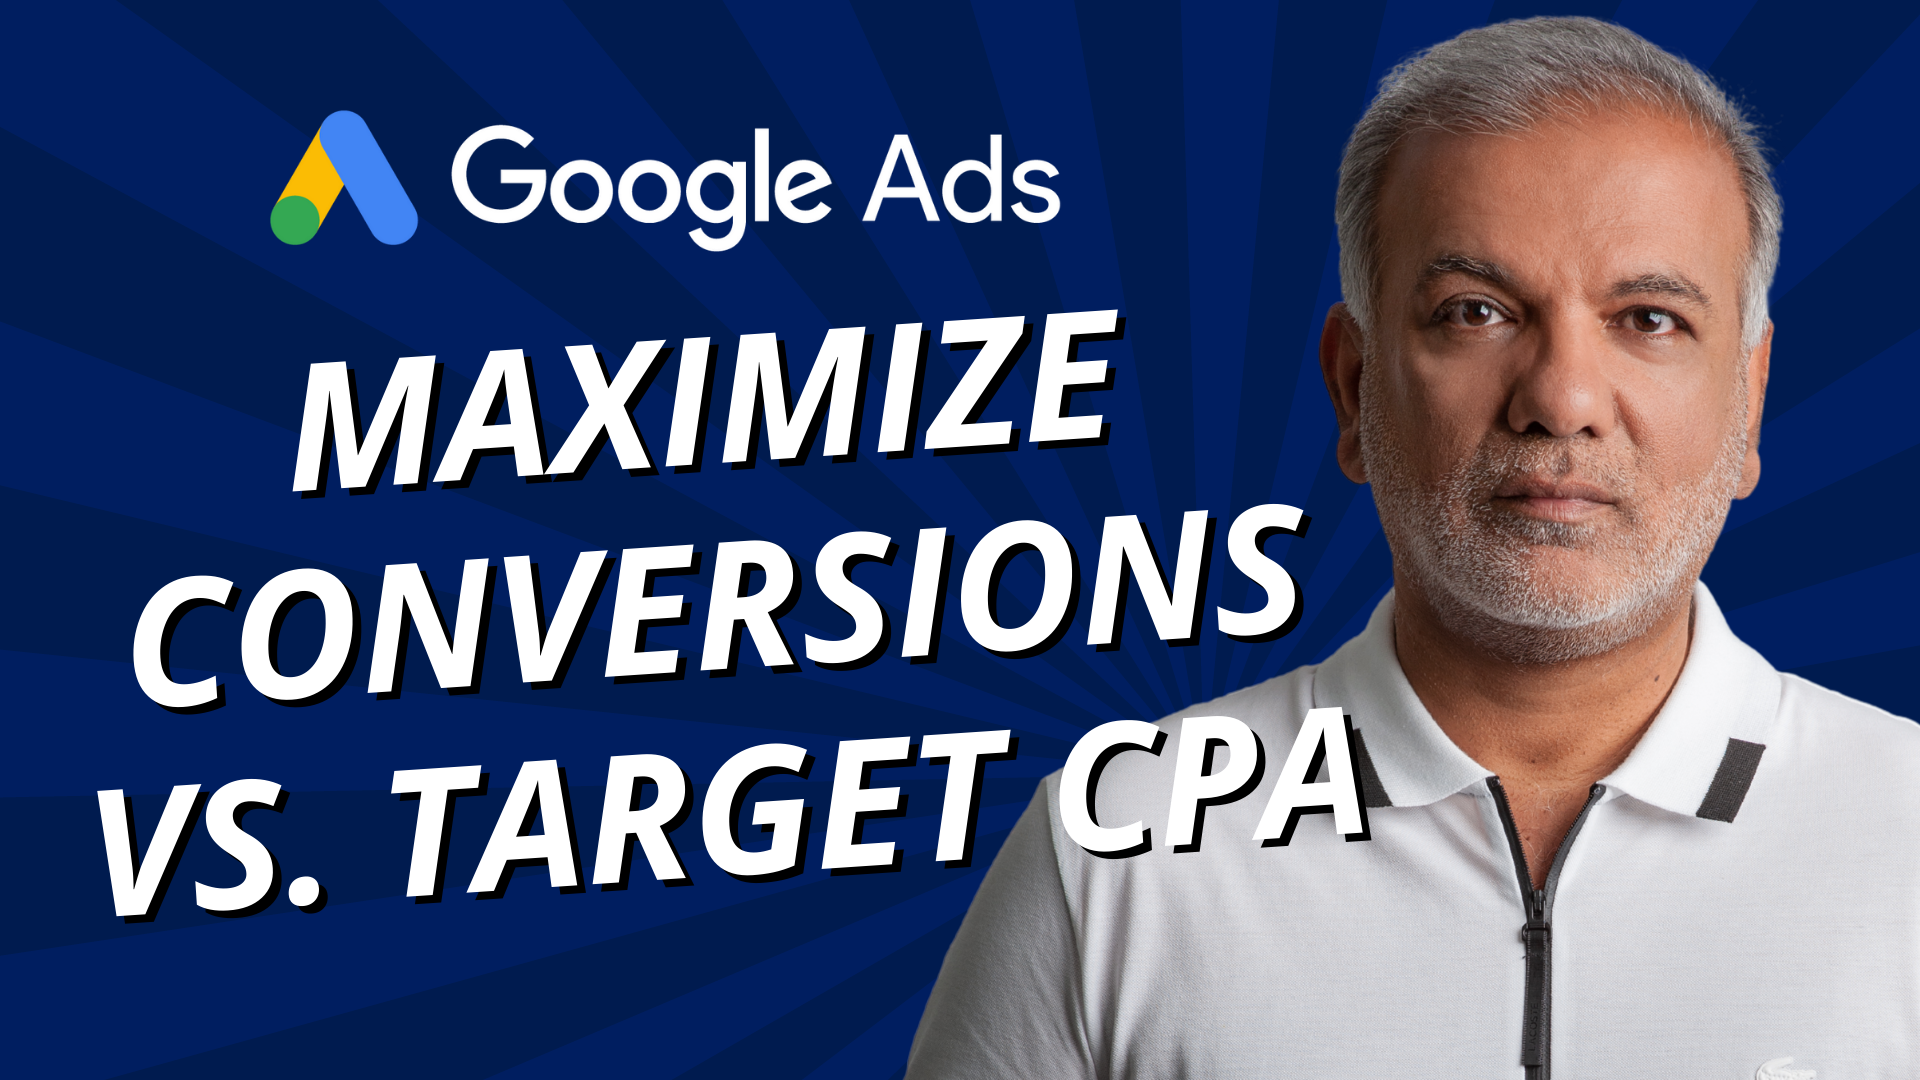 What Is The Difference Between Target CPA And Maximize Conversions?